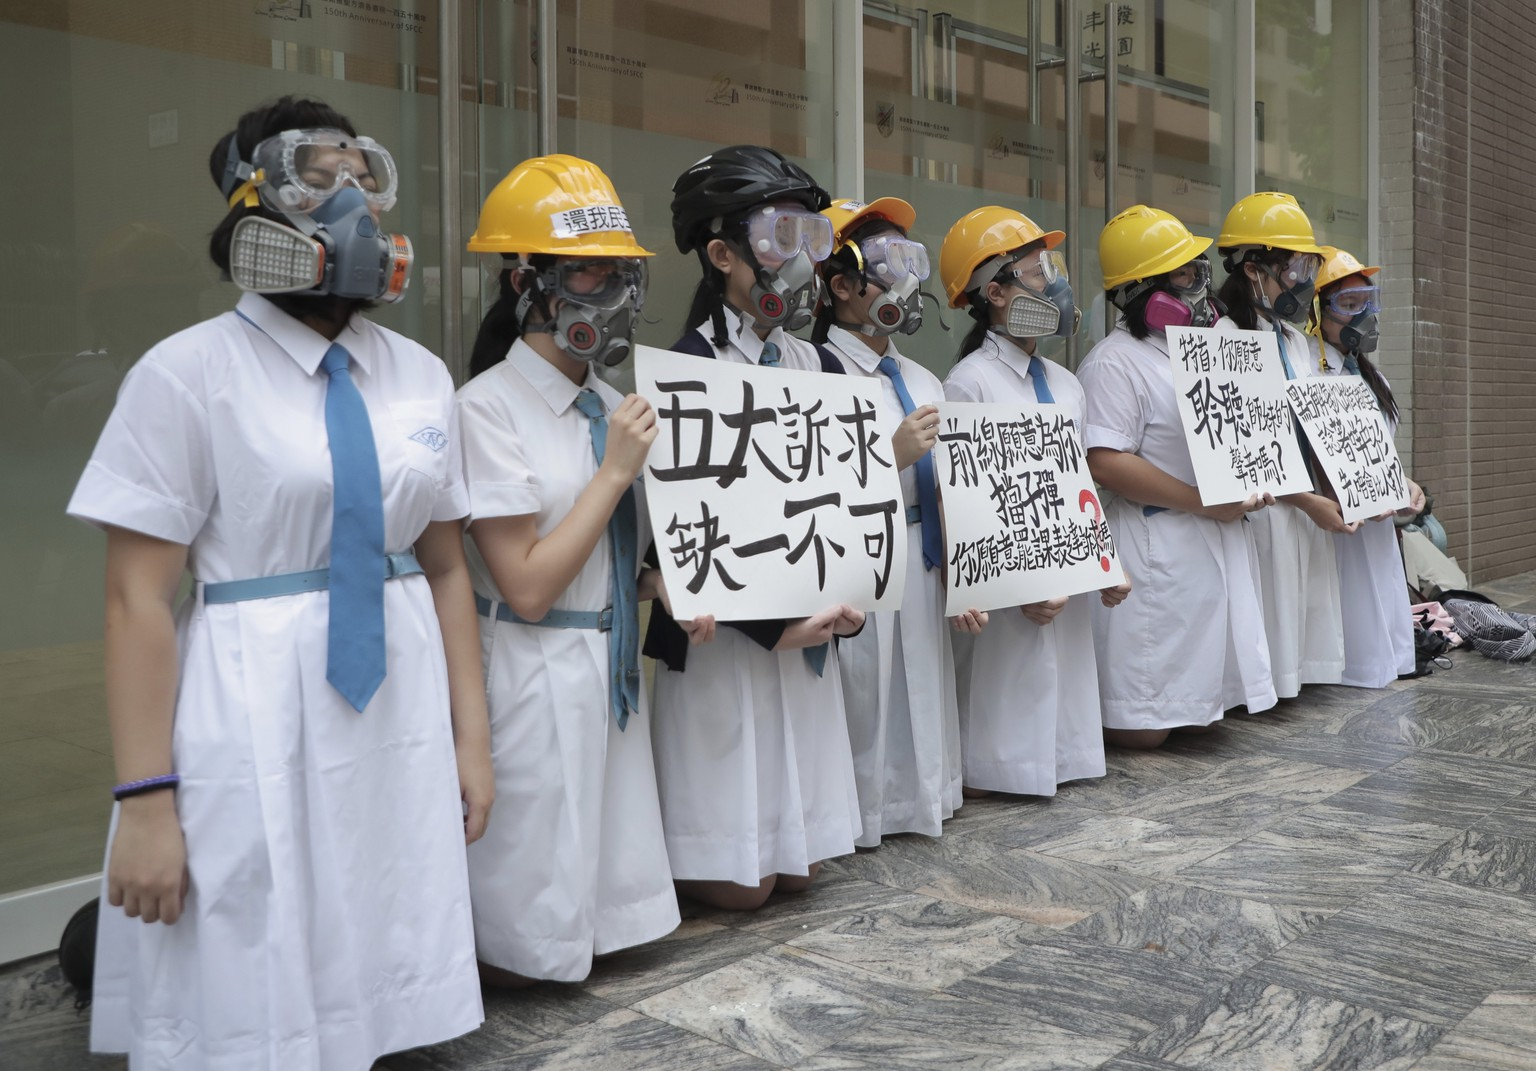 Students wearing gas masks and helmets hold a banner which reads